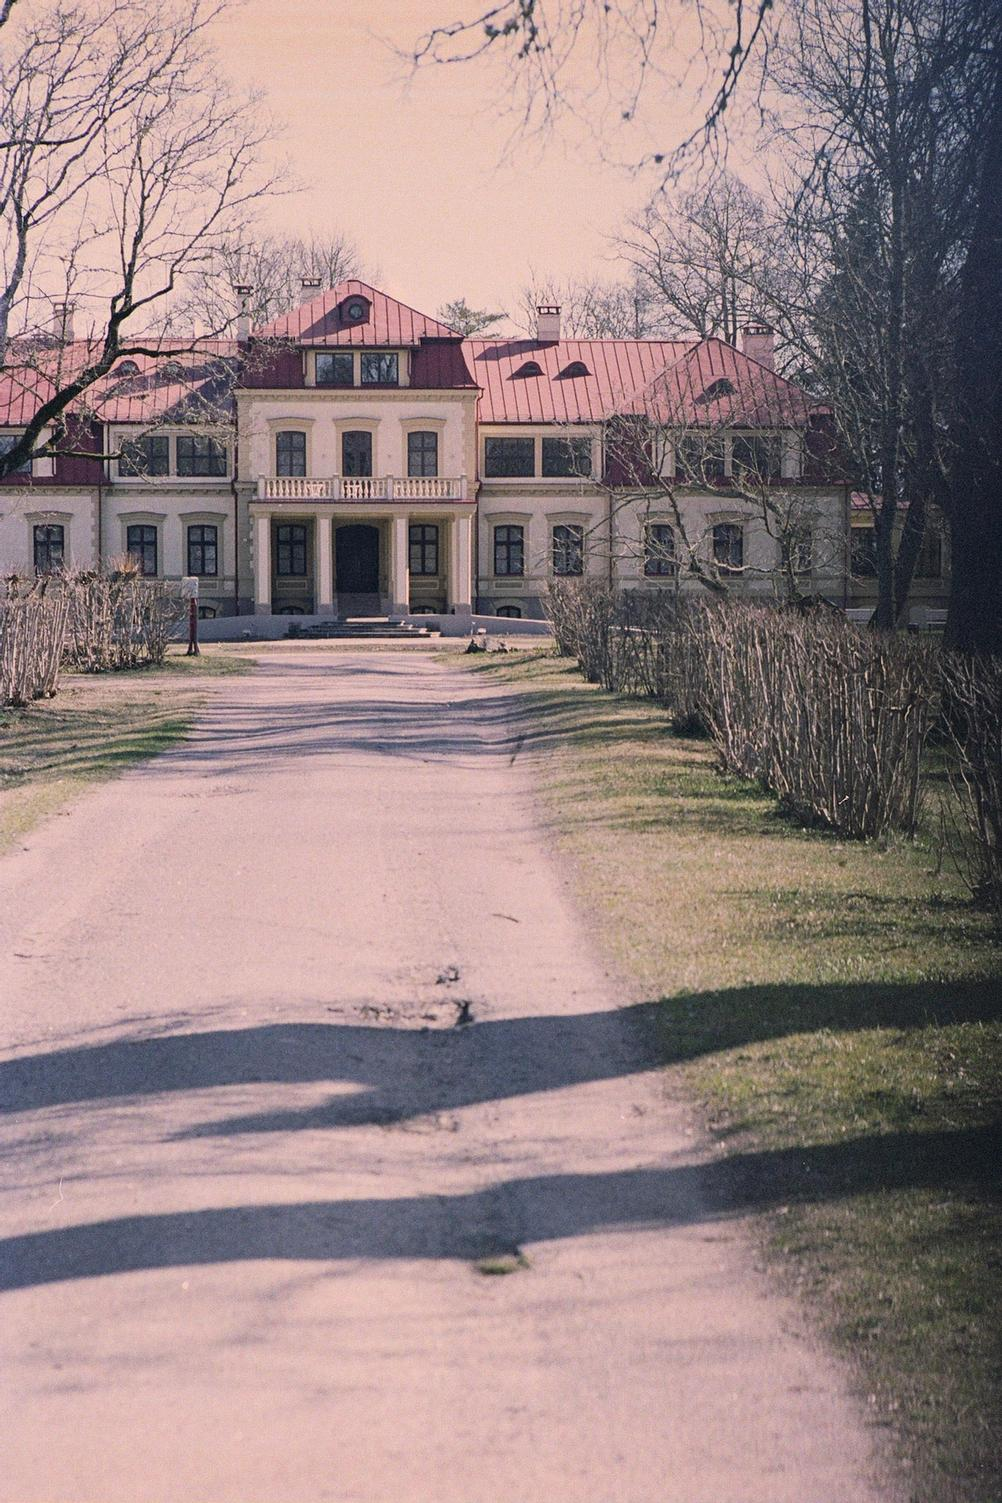 Photo of a mansion.